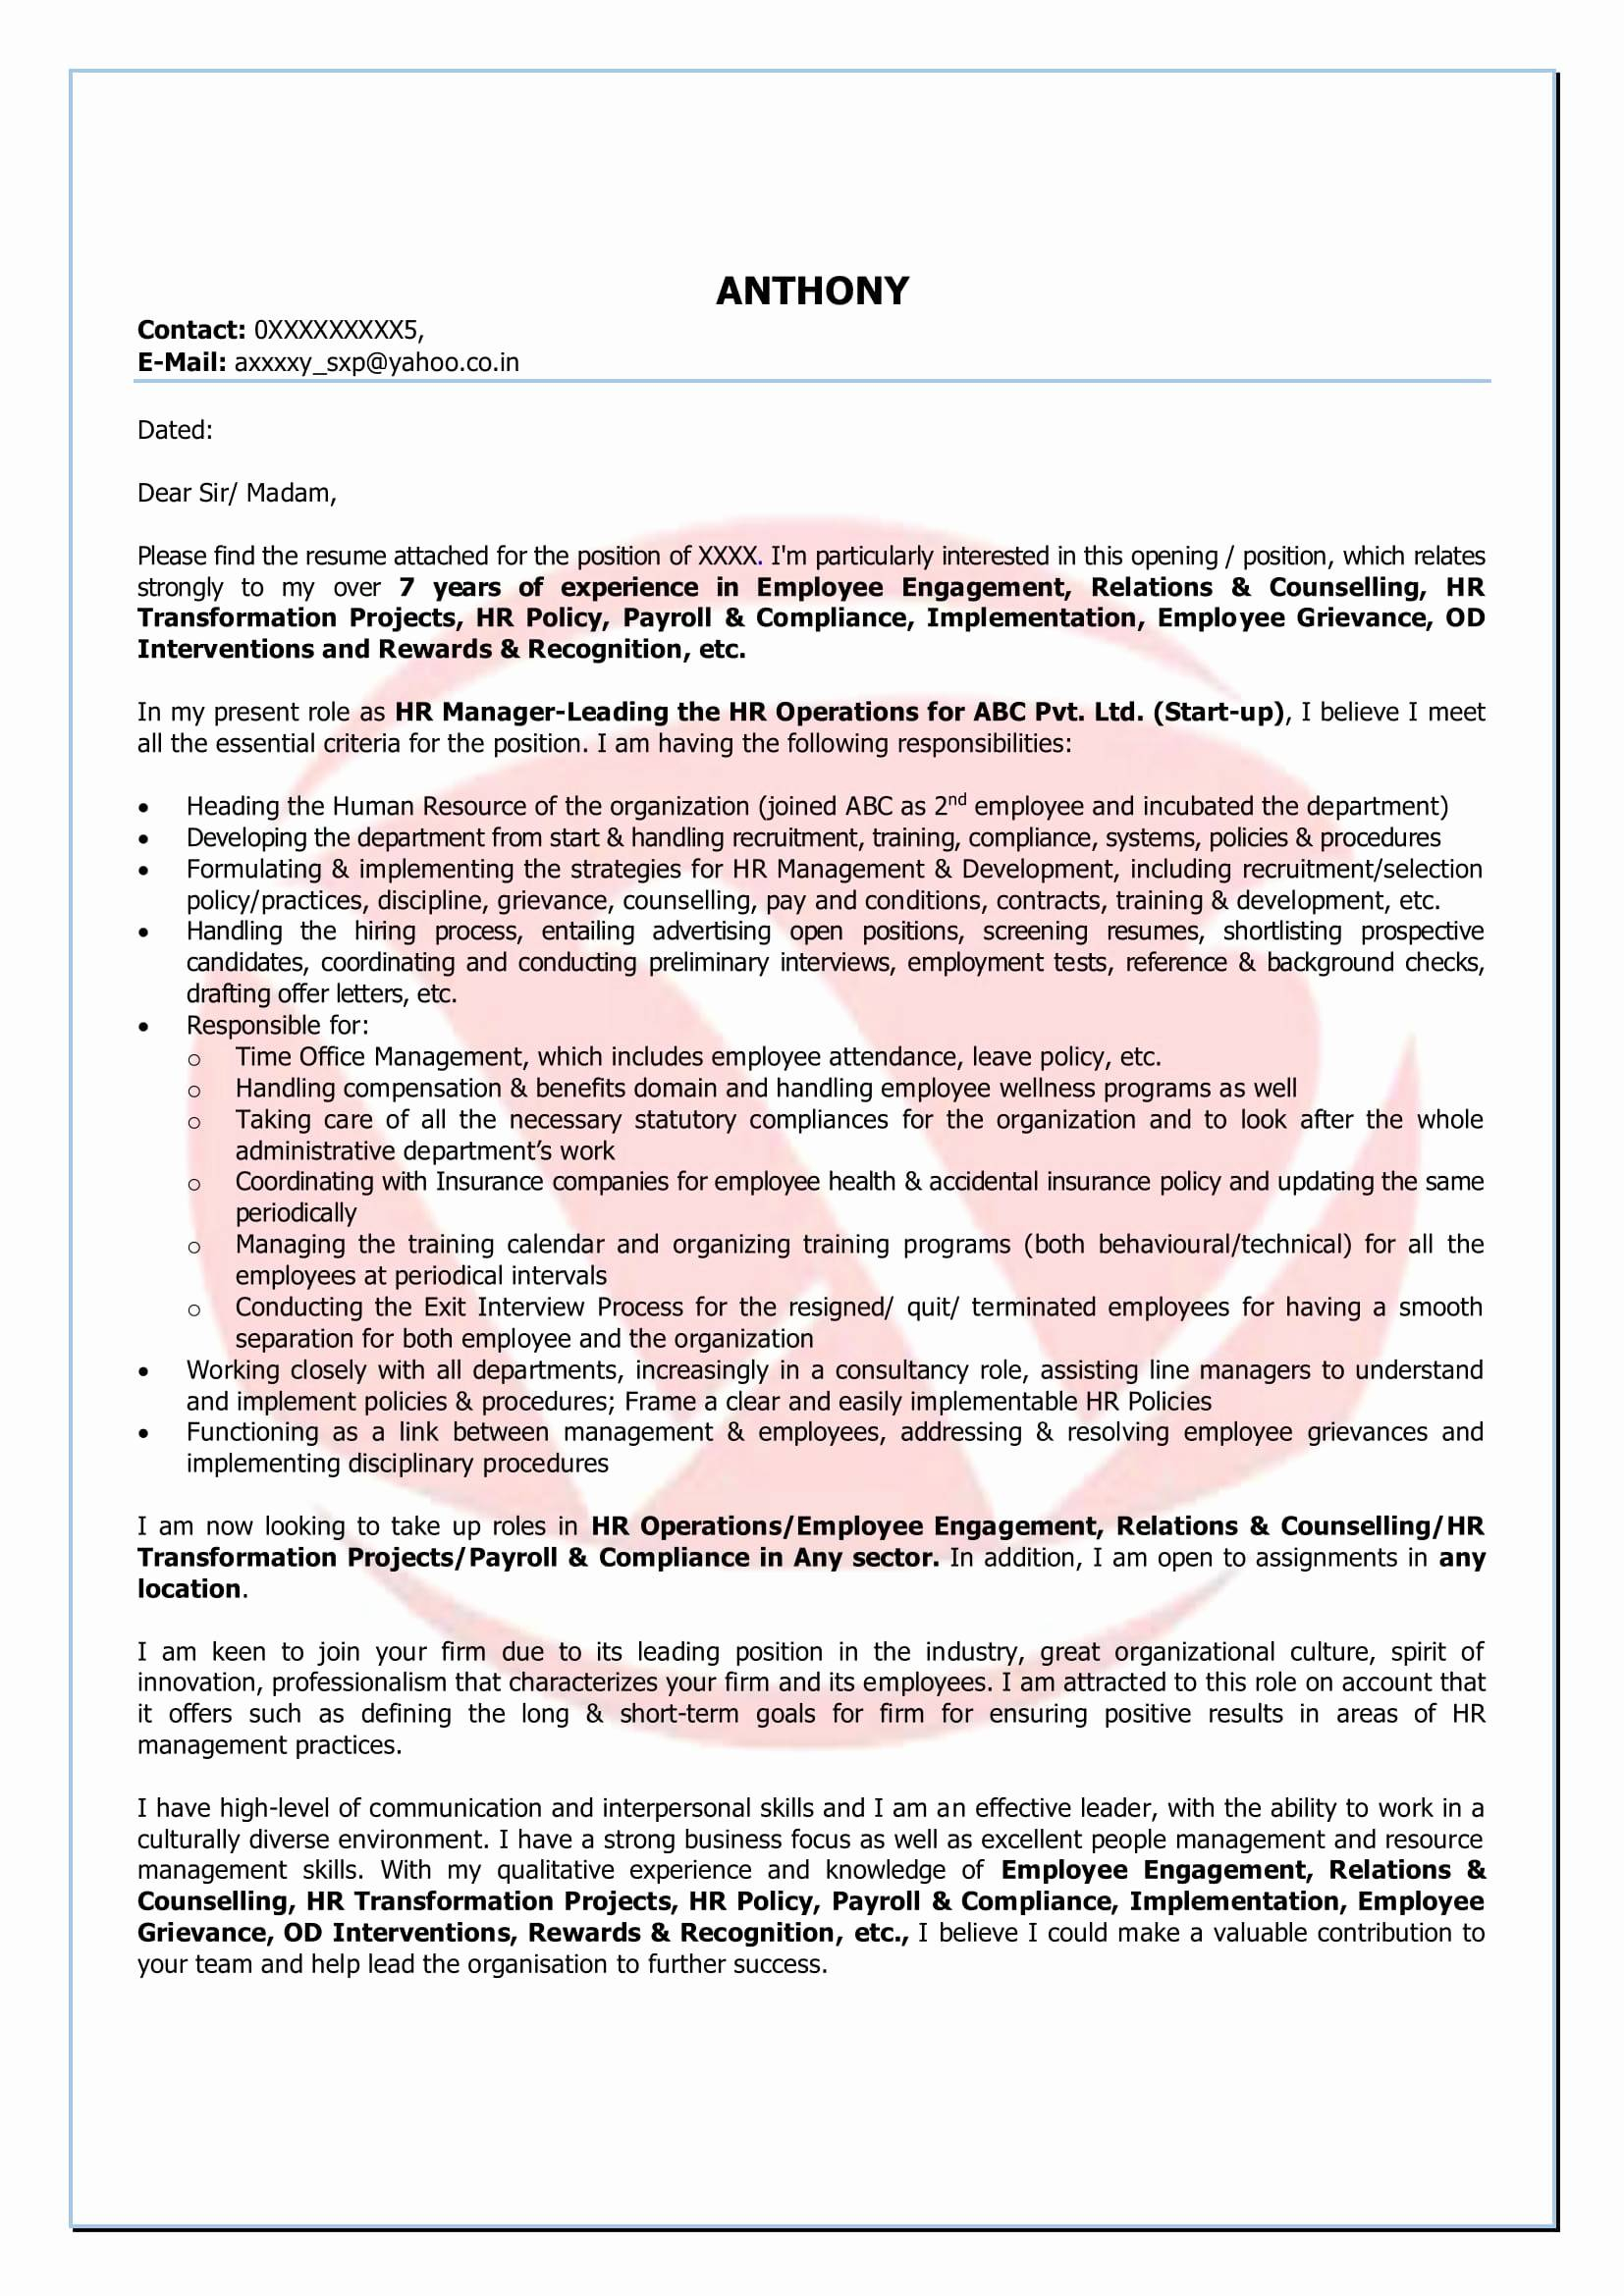 Monster Cover Letter Template Examples  Letter Cover Templates